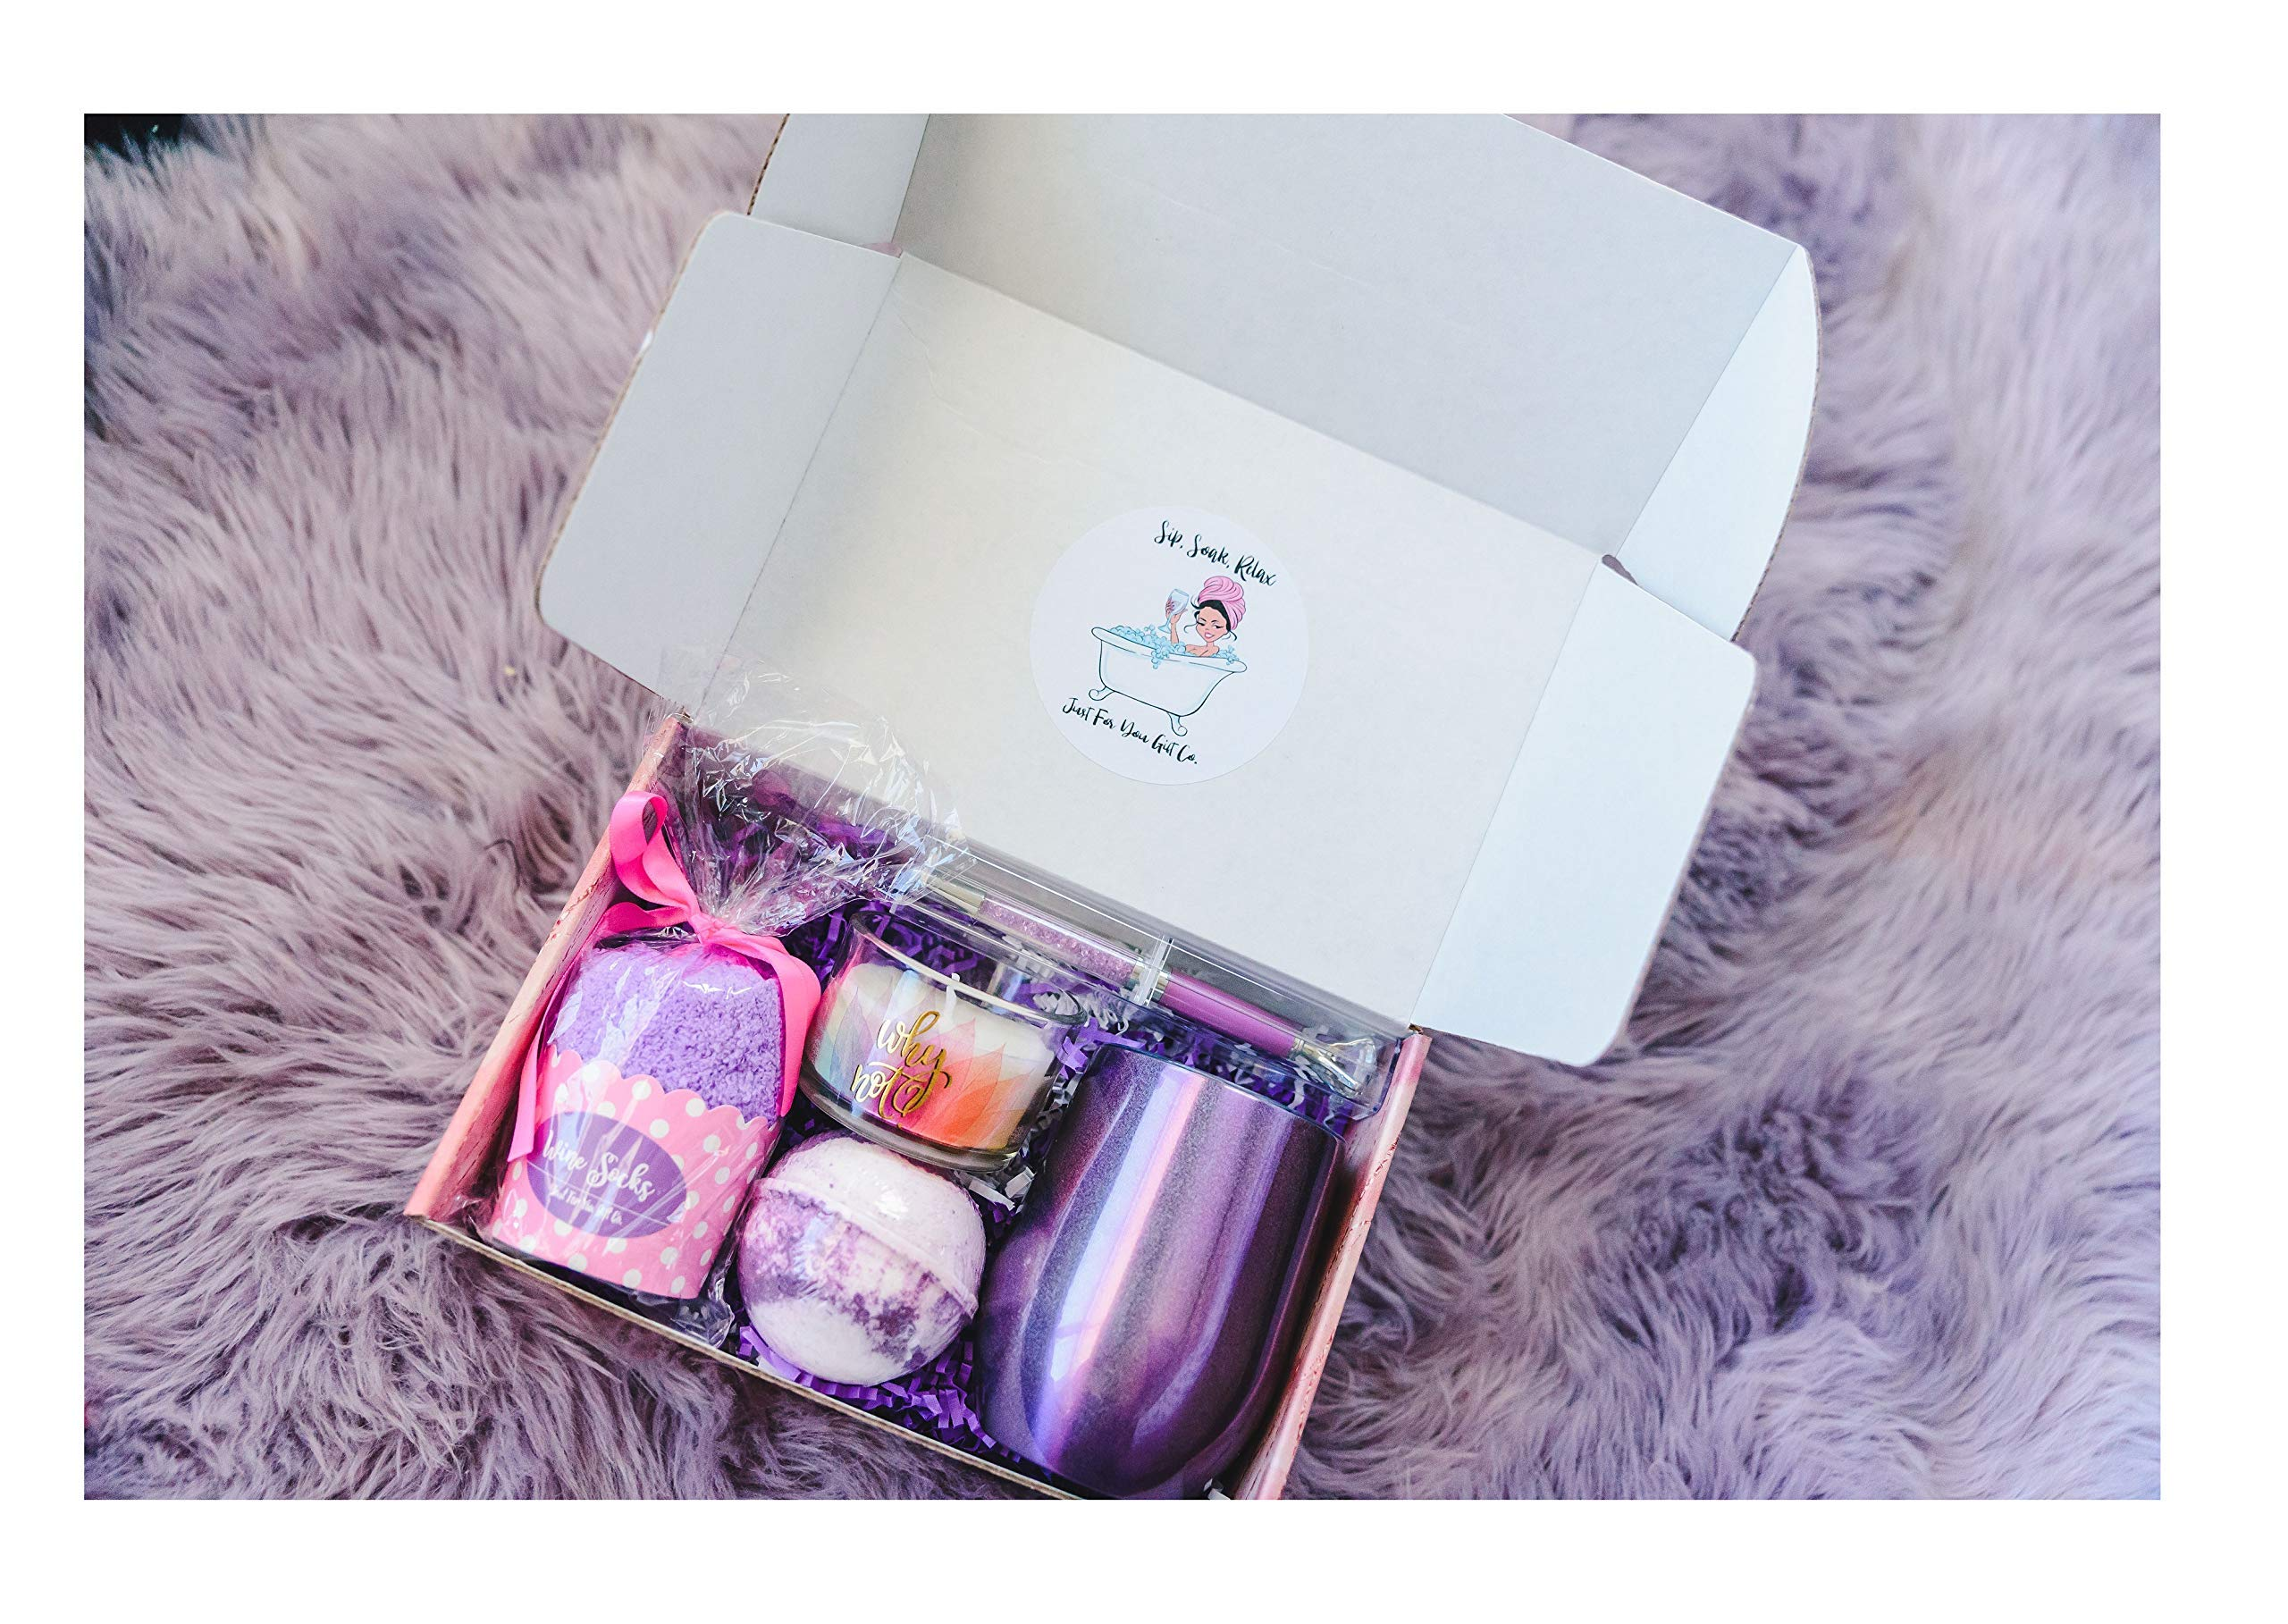 Birthday Gift for women Wine Tumbler Bath Fizzies Wine Socks Purple by Just For You Gift Company